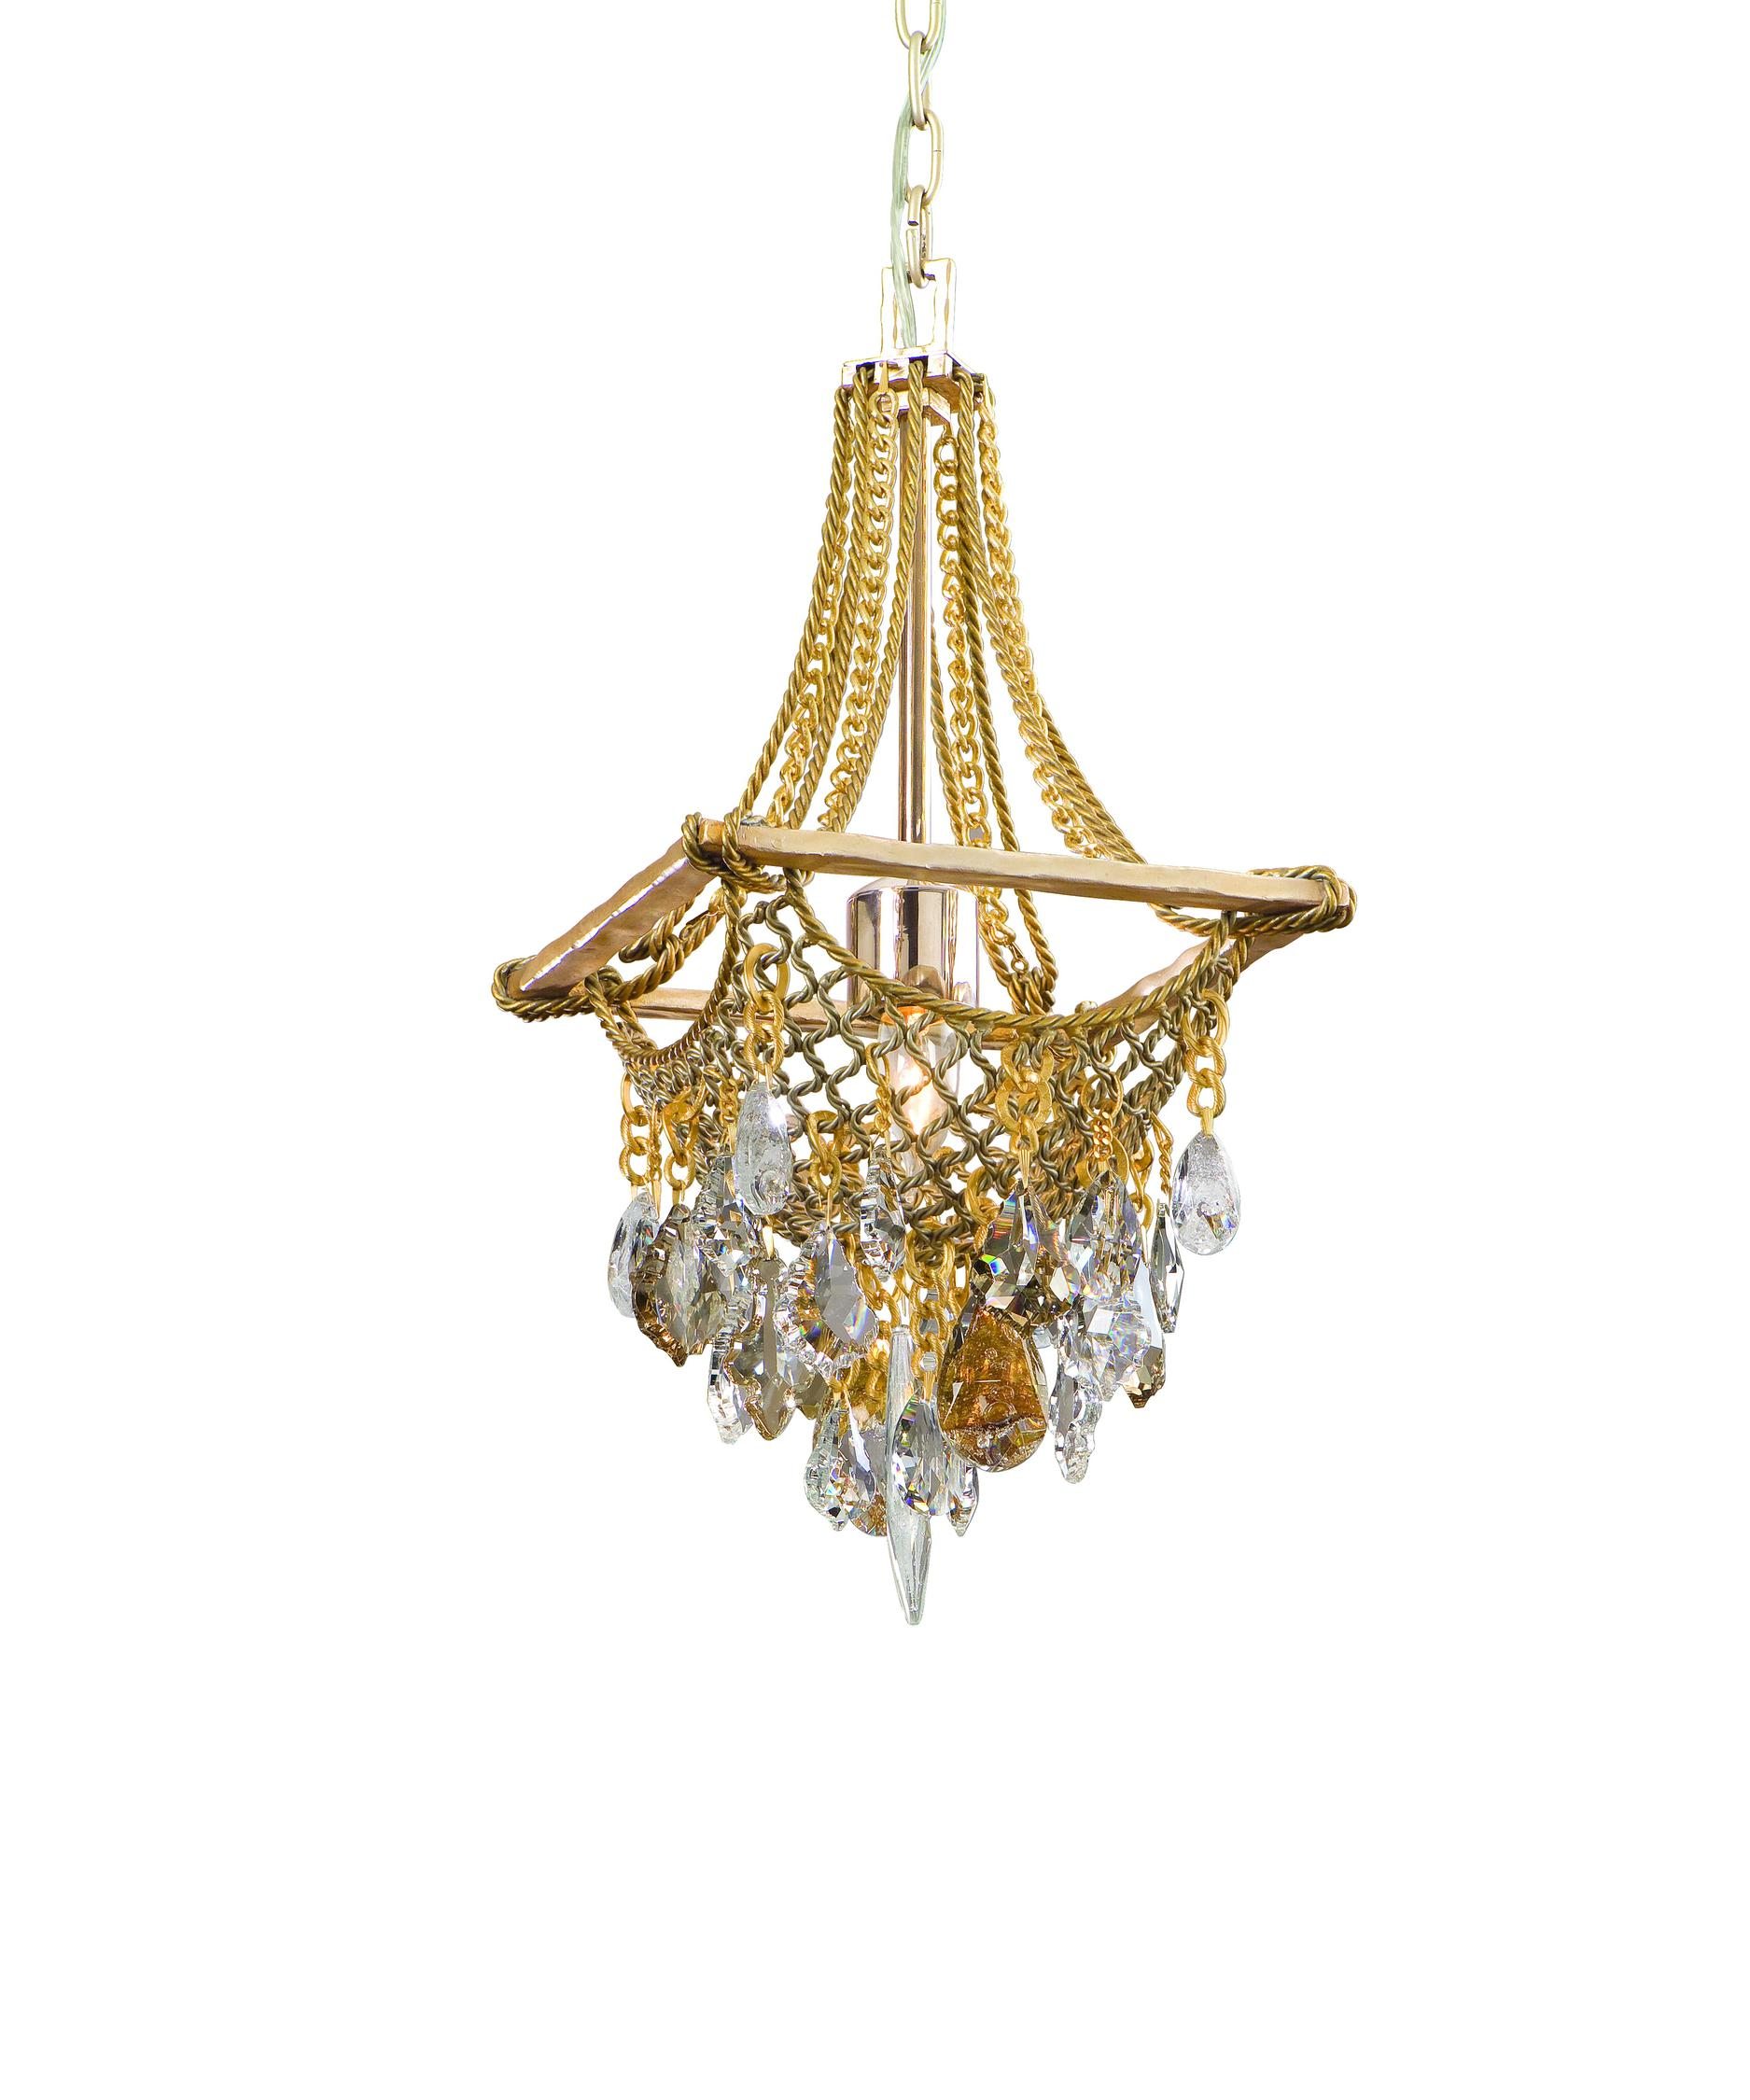 shown in silver and gold leaf finish - Corbett Lighting